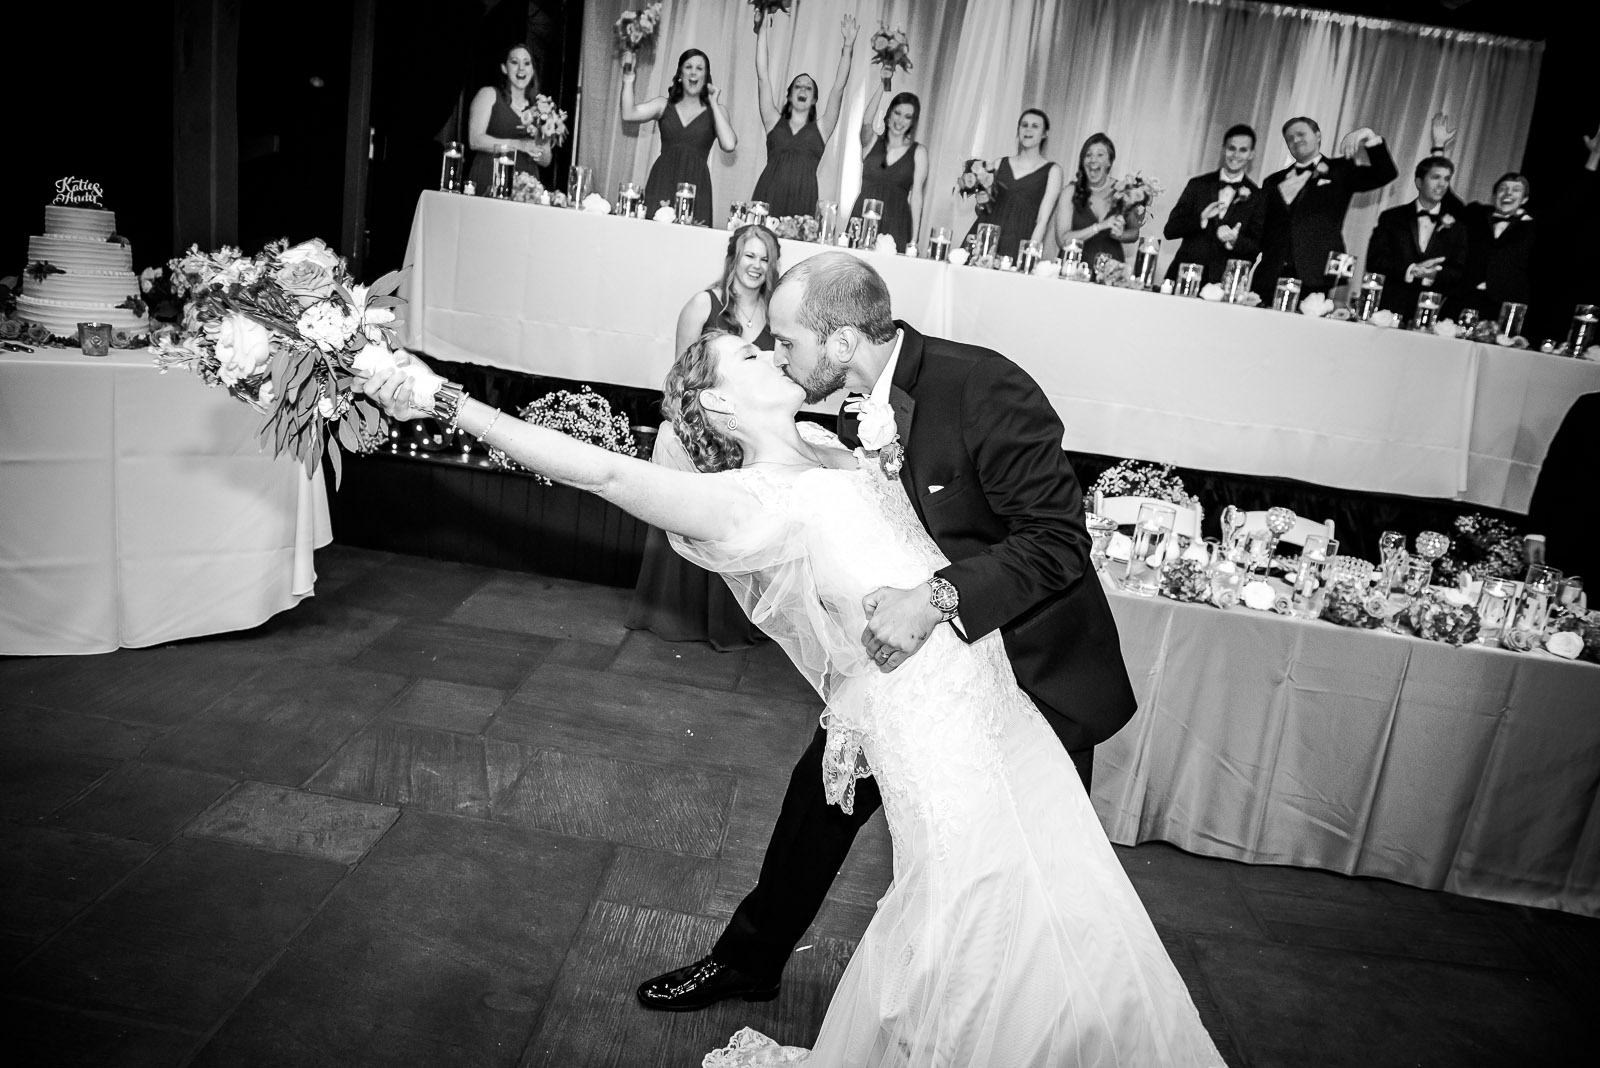 eric_and_christy_photographers_blog_wedding_katieandy-48